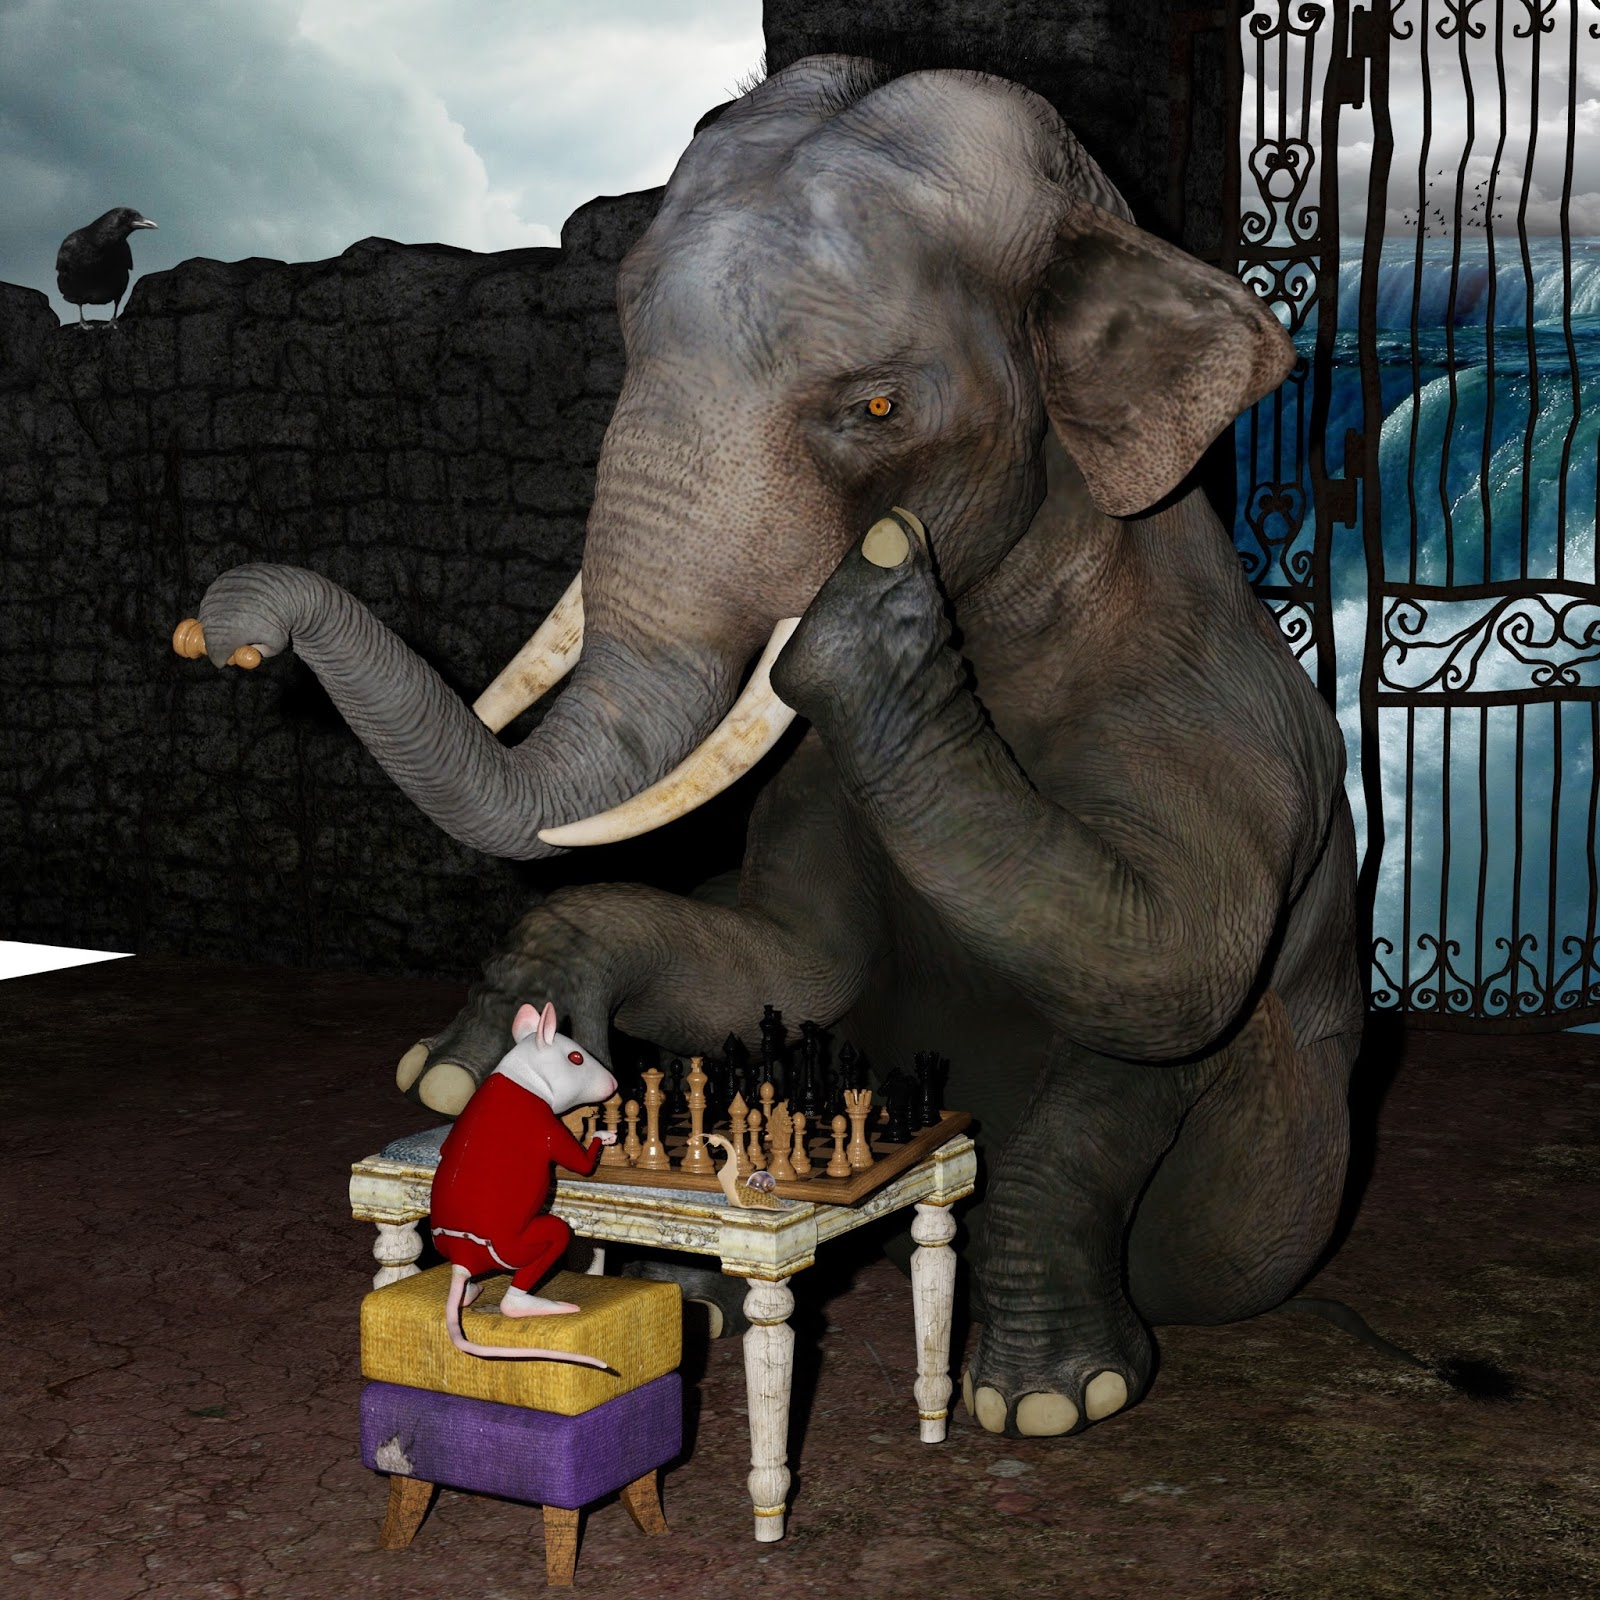 A funny picture of a rat and elephant playing chess.